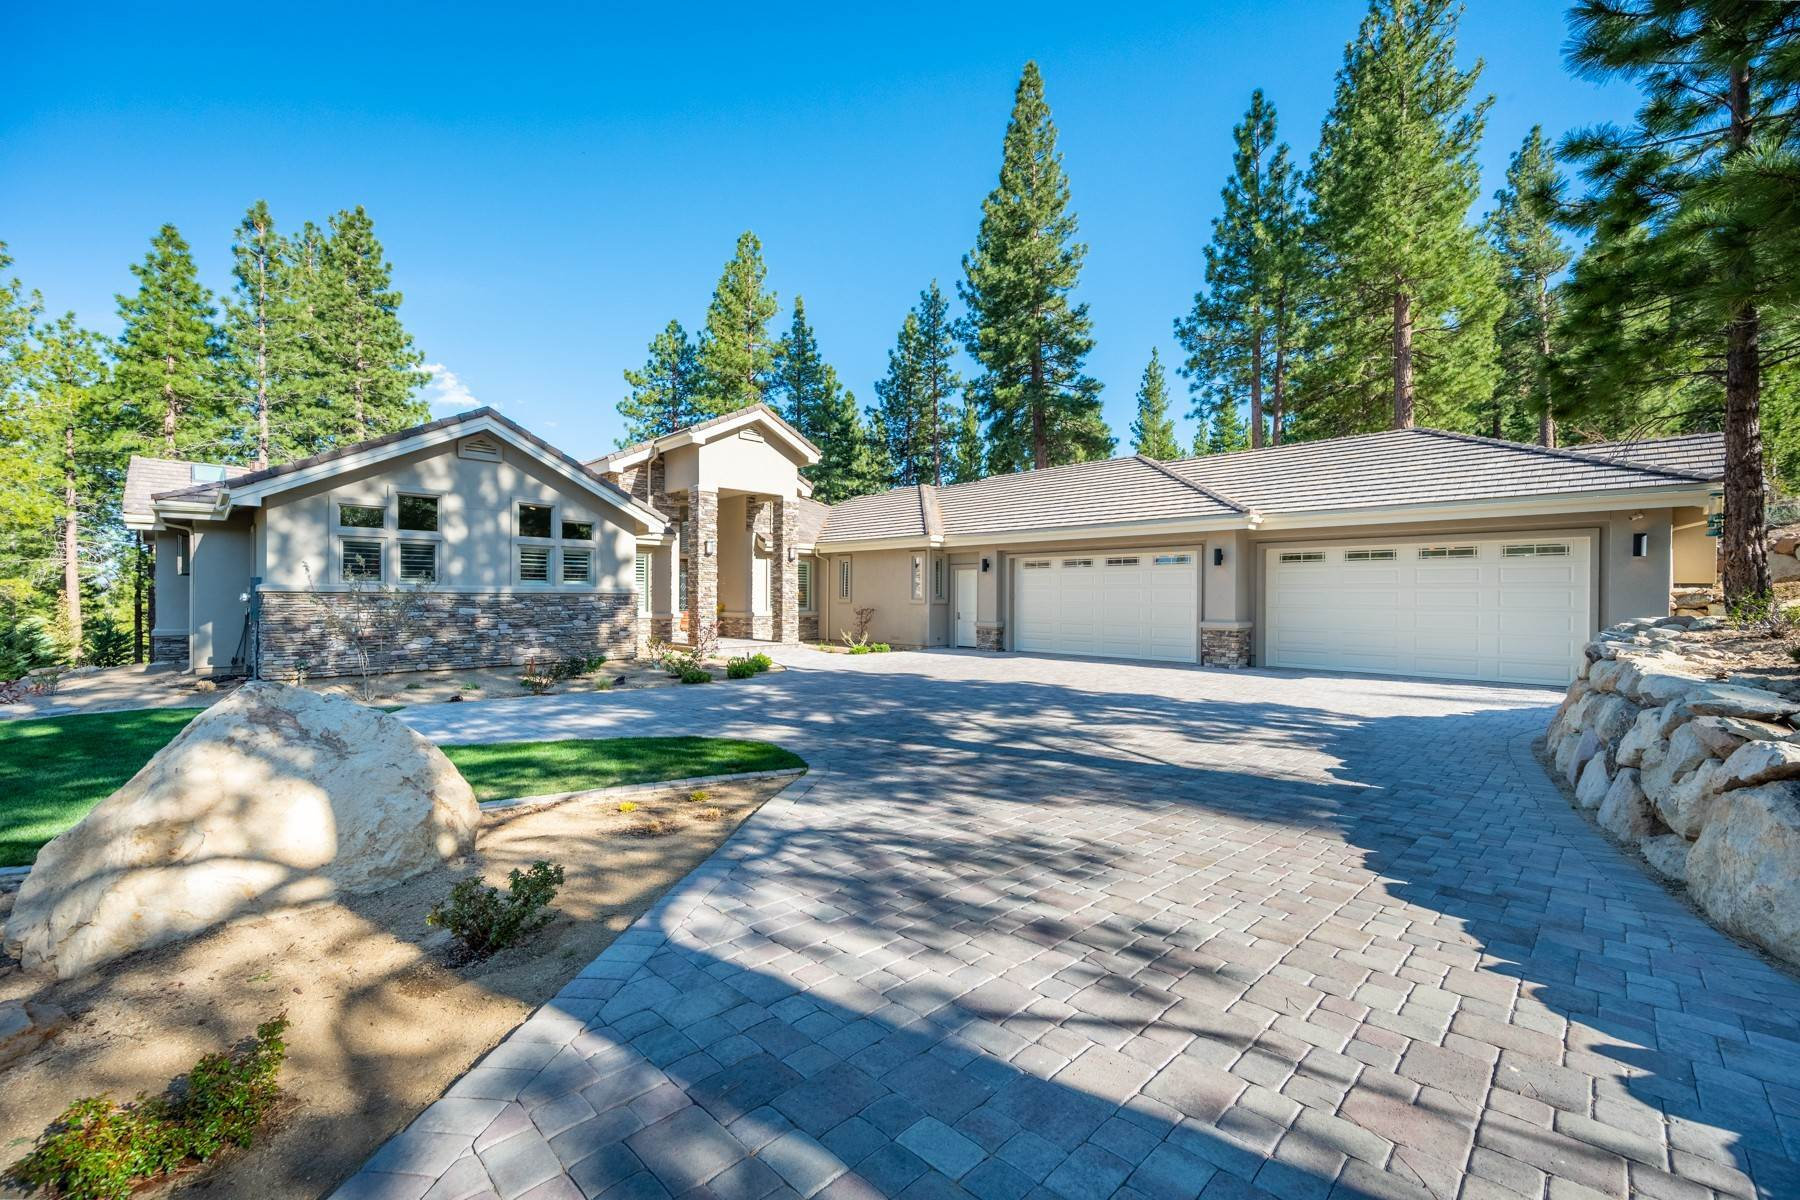 Property for Active at Scotch Pines Mountain Contemporary 136 W Jeffrey Pine Rd, Scotch Pines, Galena Forest Estates Reno, Nevada 89511 United States